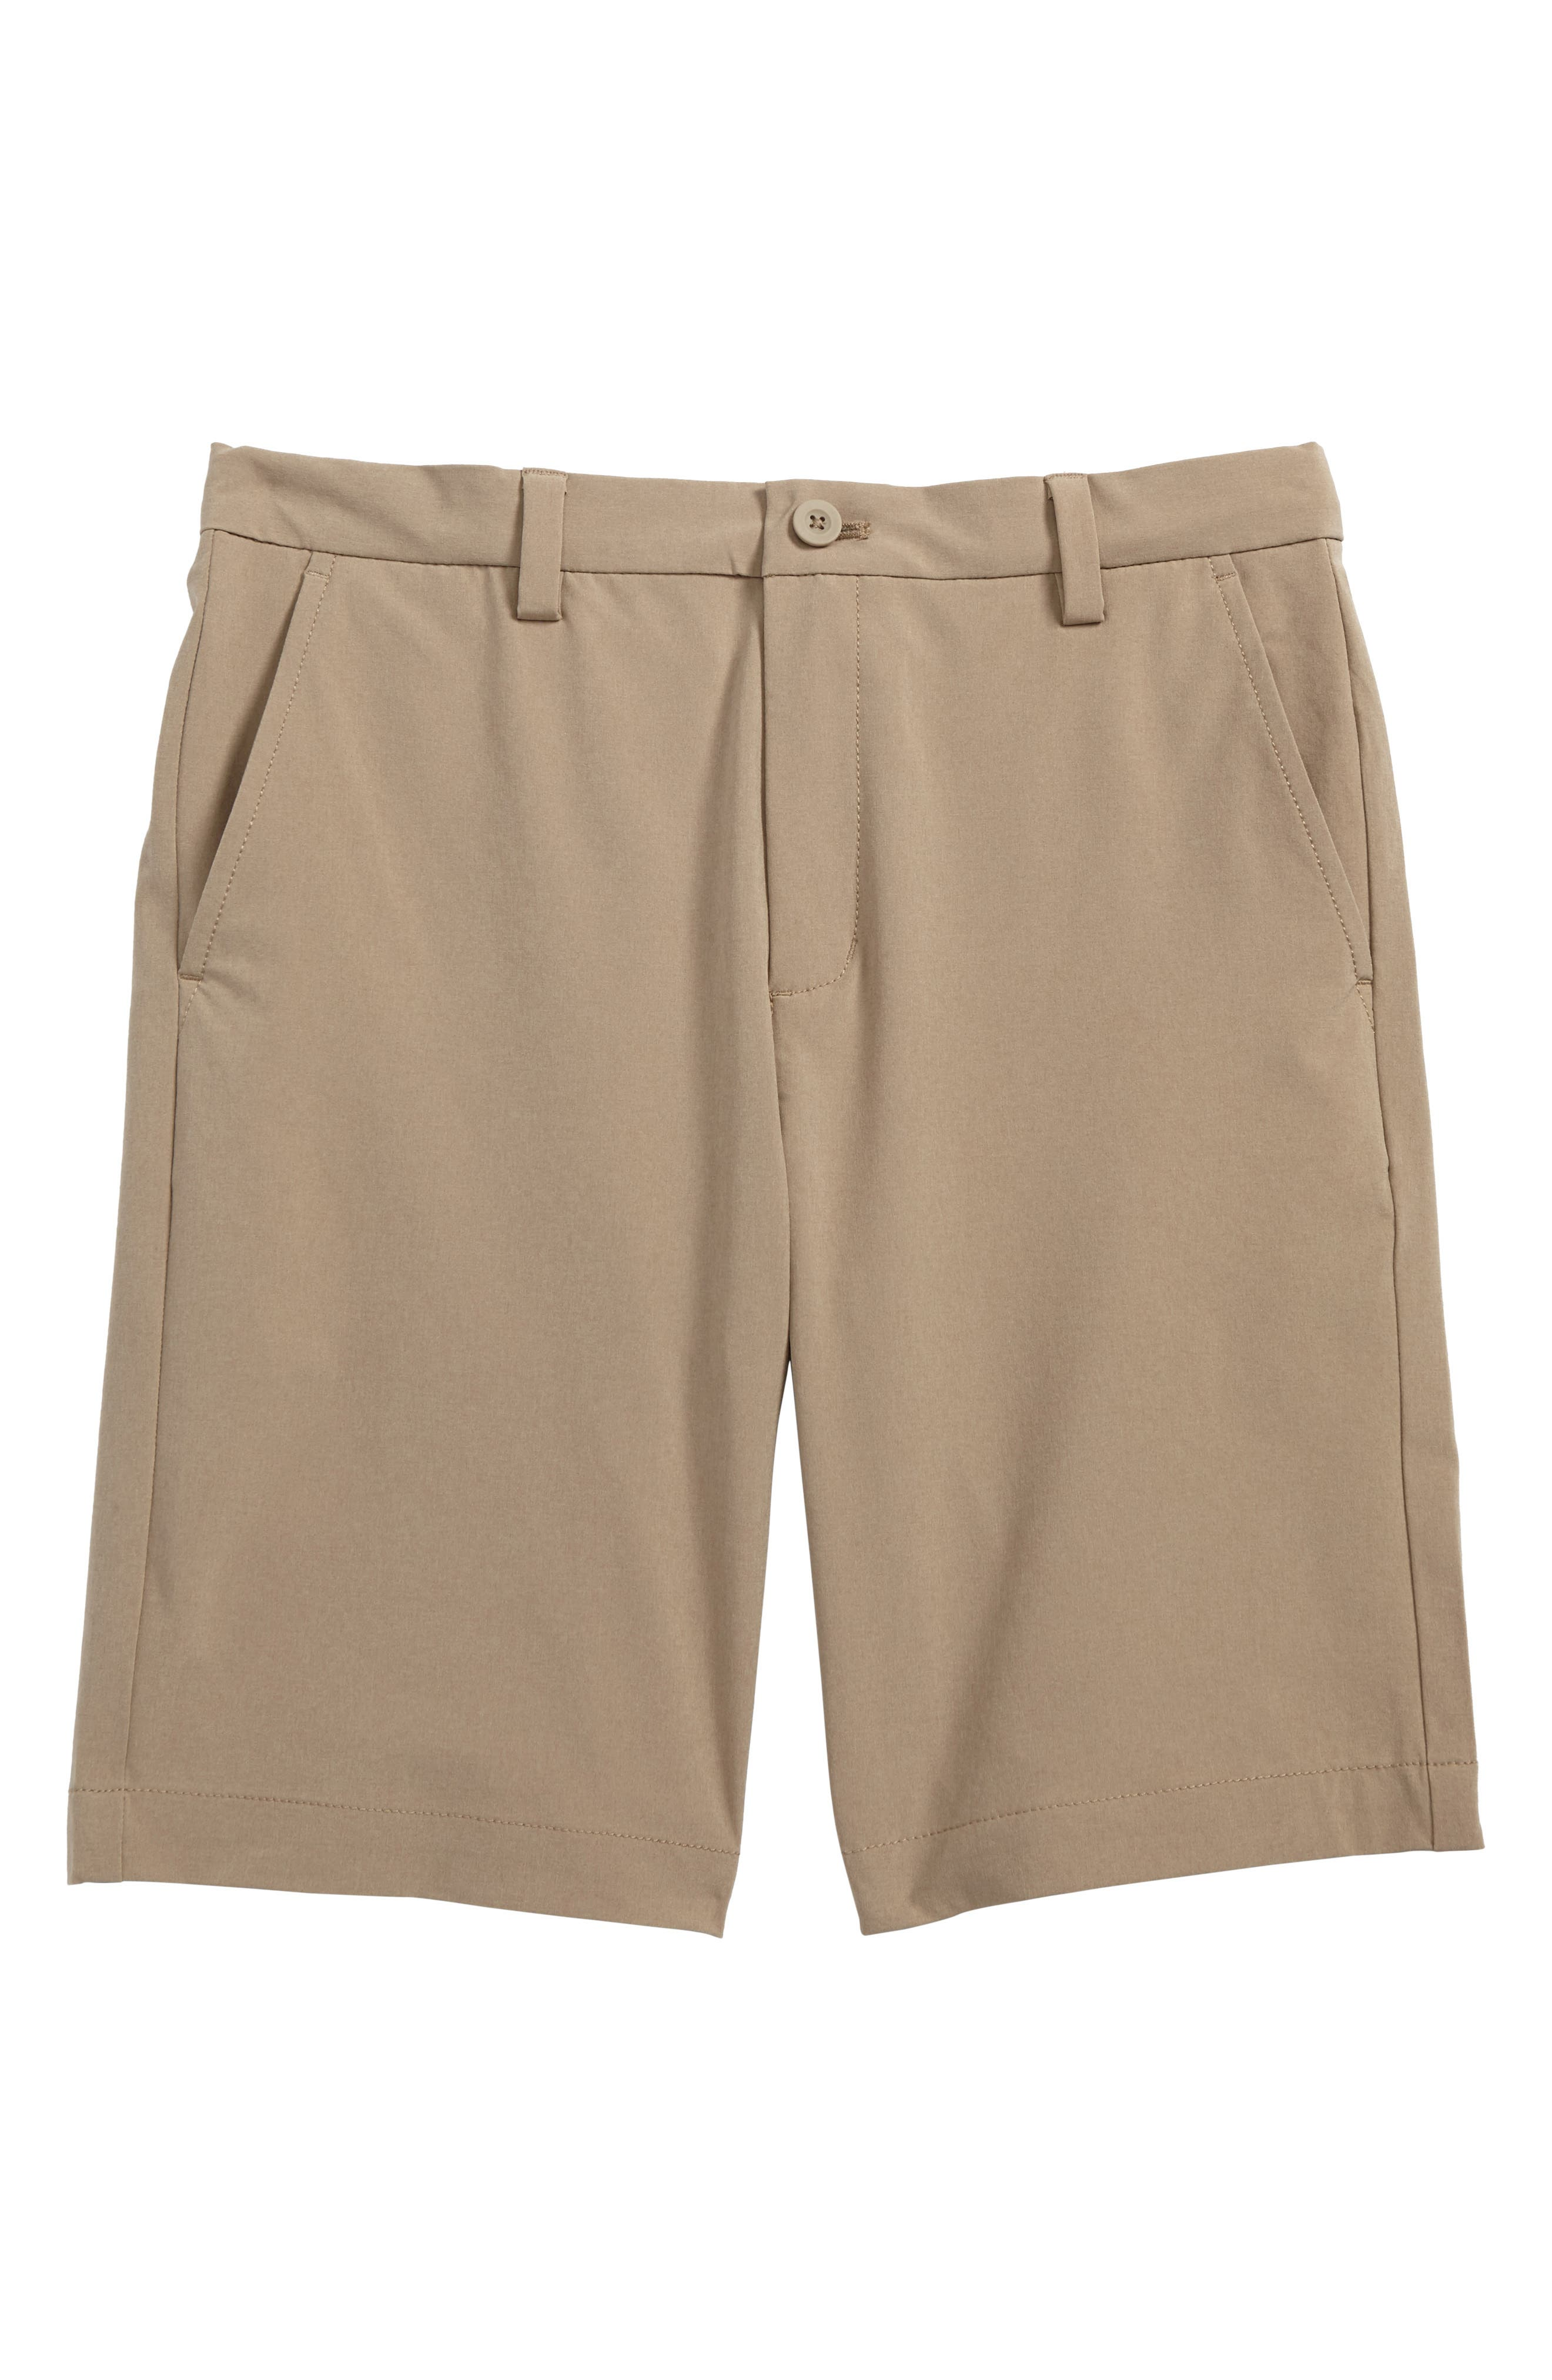 Performance Breaker Shorts,                         Main,                         color, Khaki